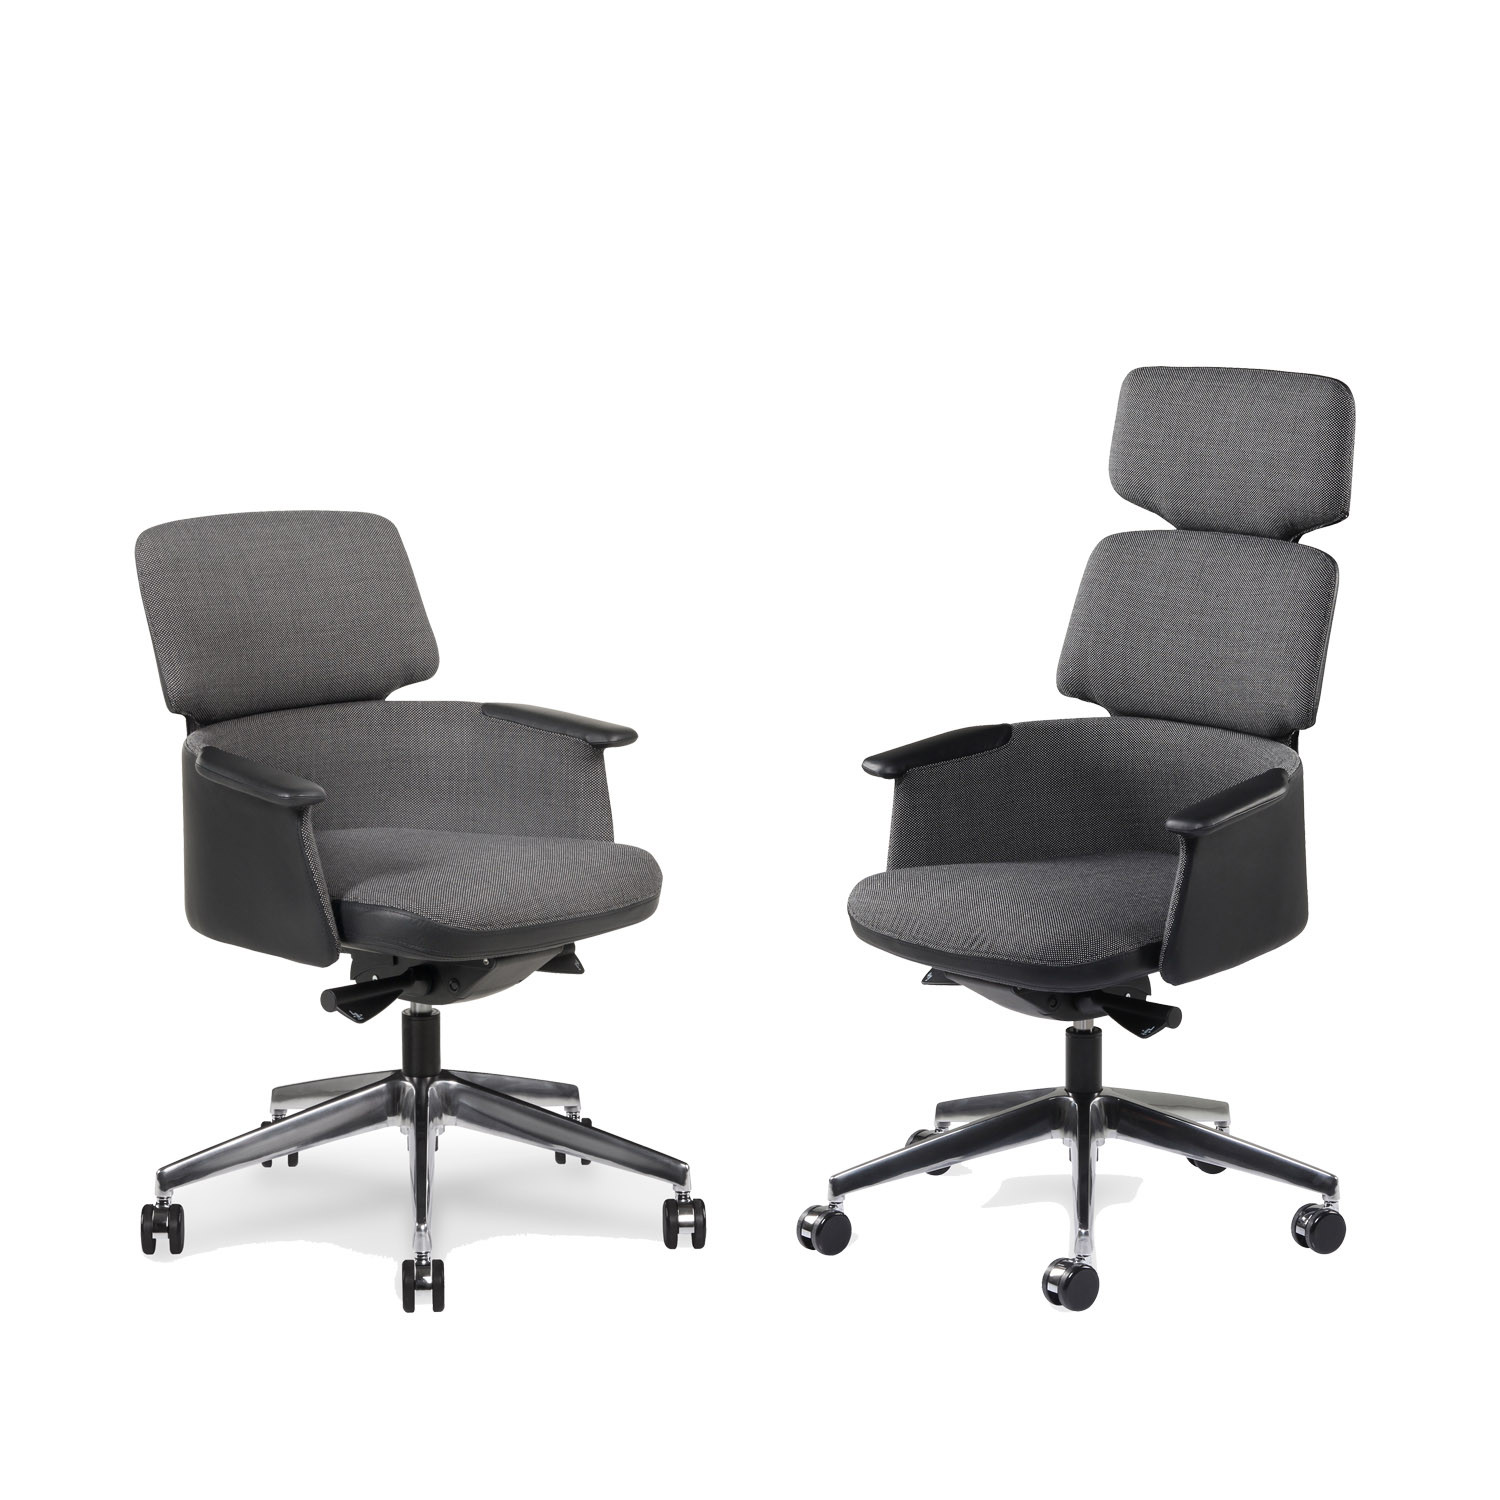 Tola Chairs